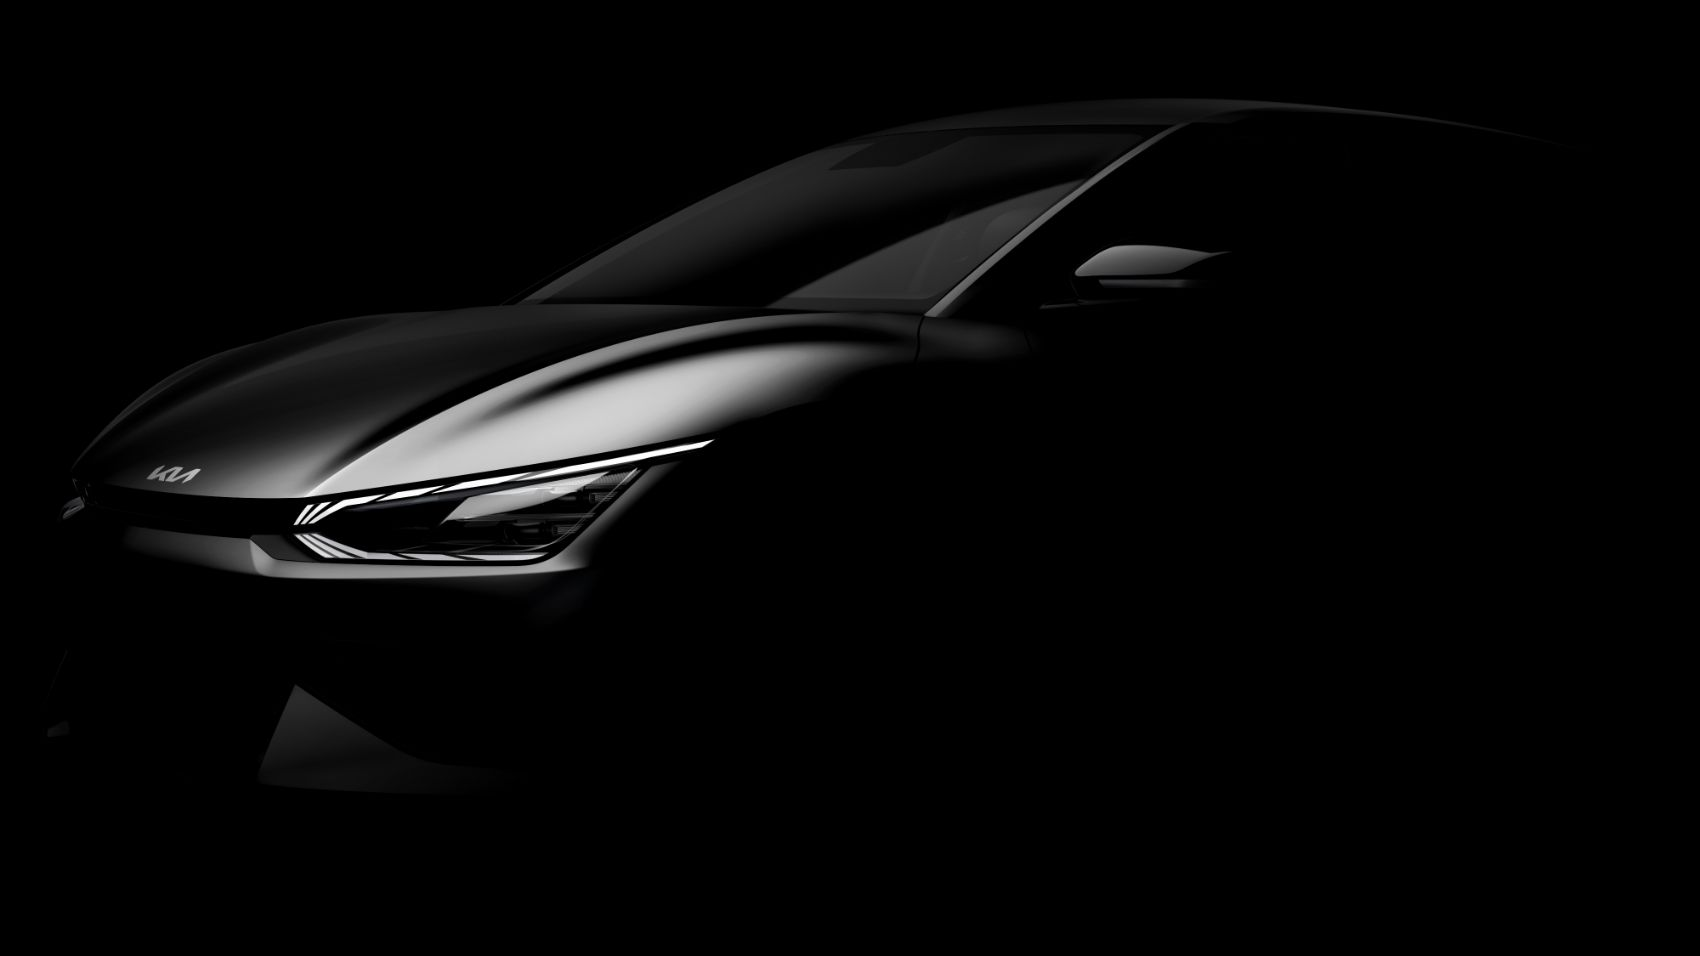 New Kia EV6 Teased, Full Reveal Coming Soon